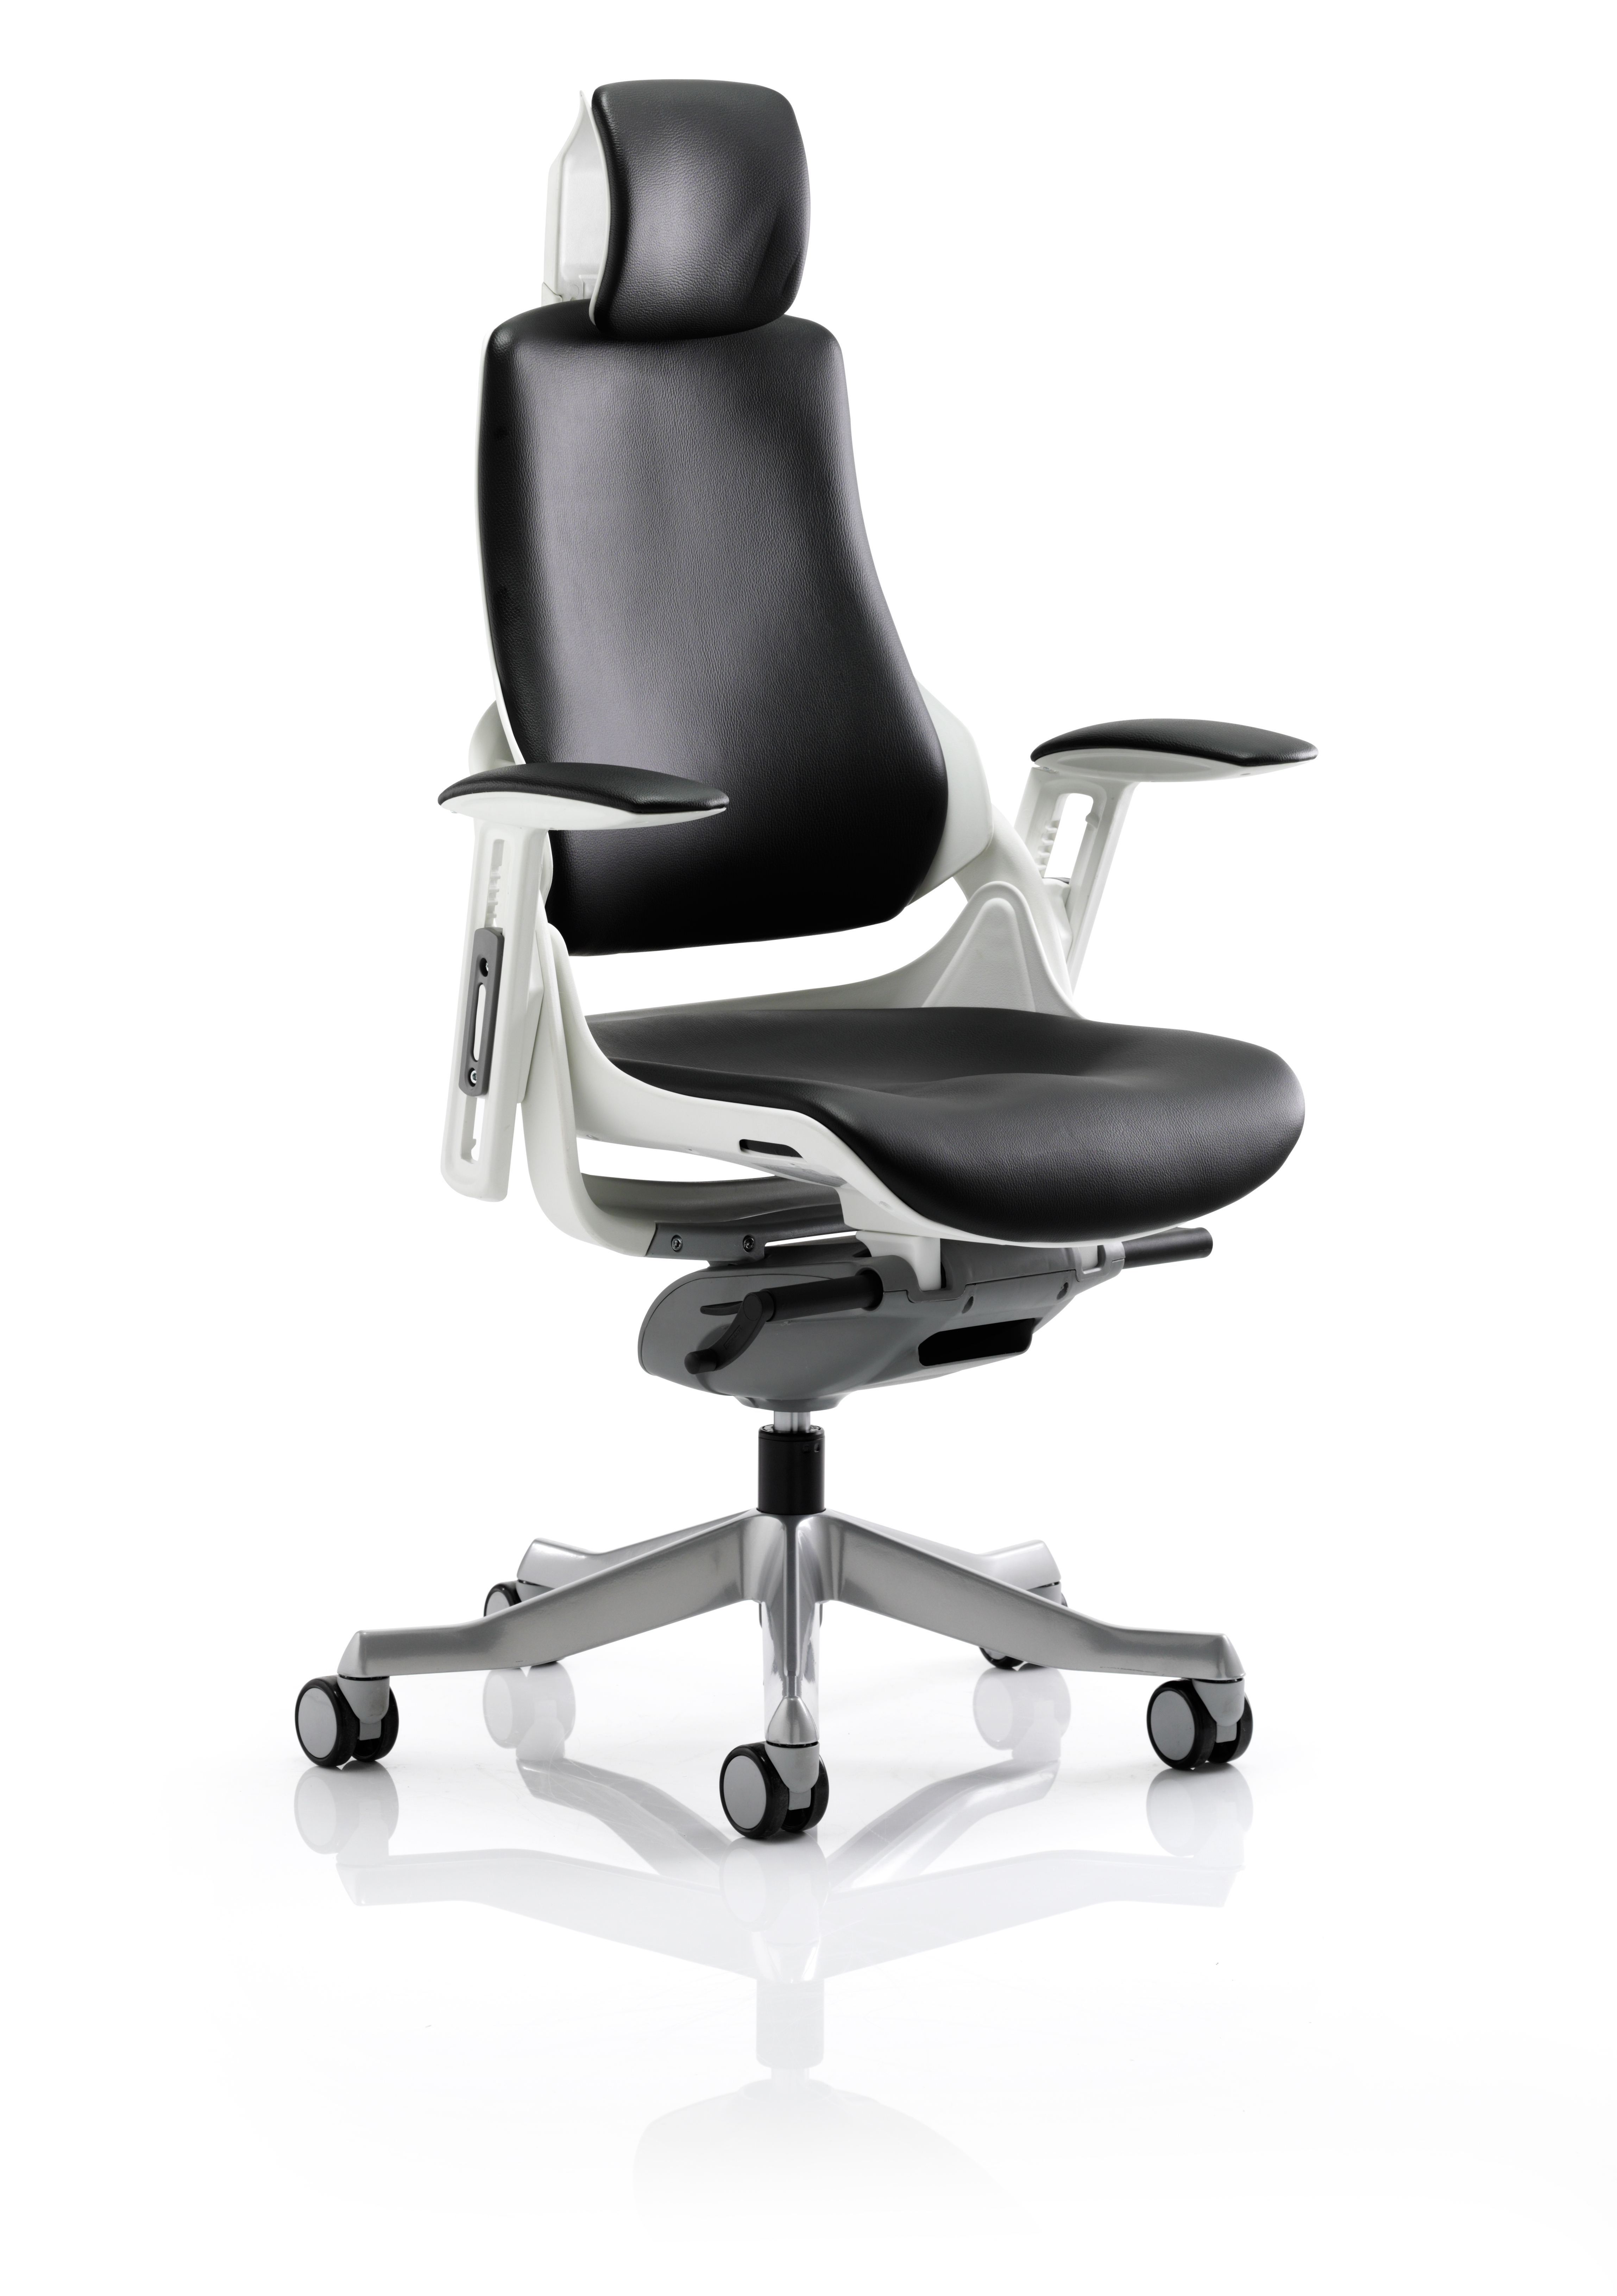 Executive Chairs Zure Black Leather With Arms With Headrest KC0166